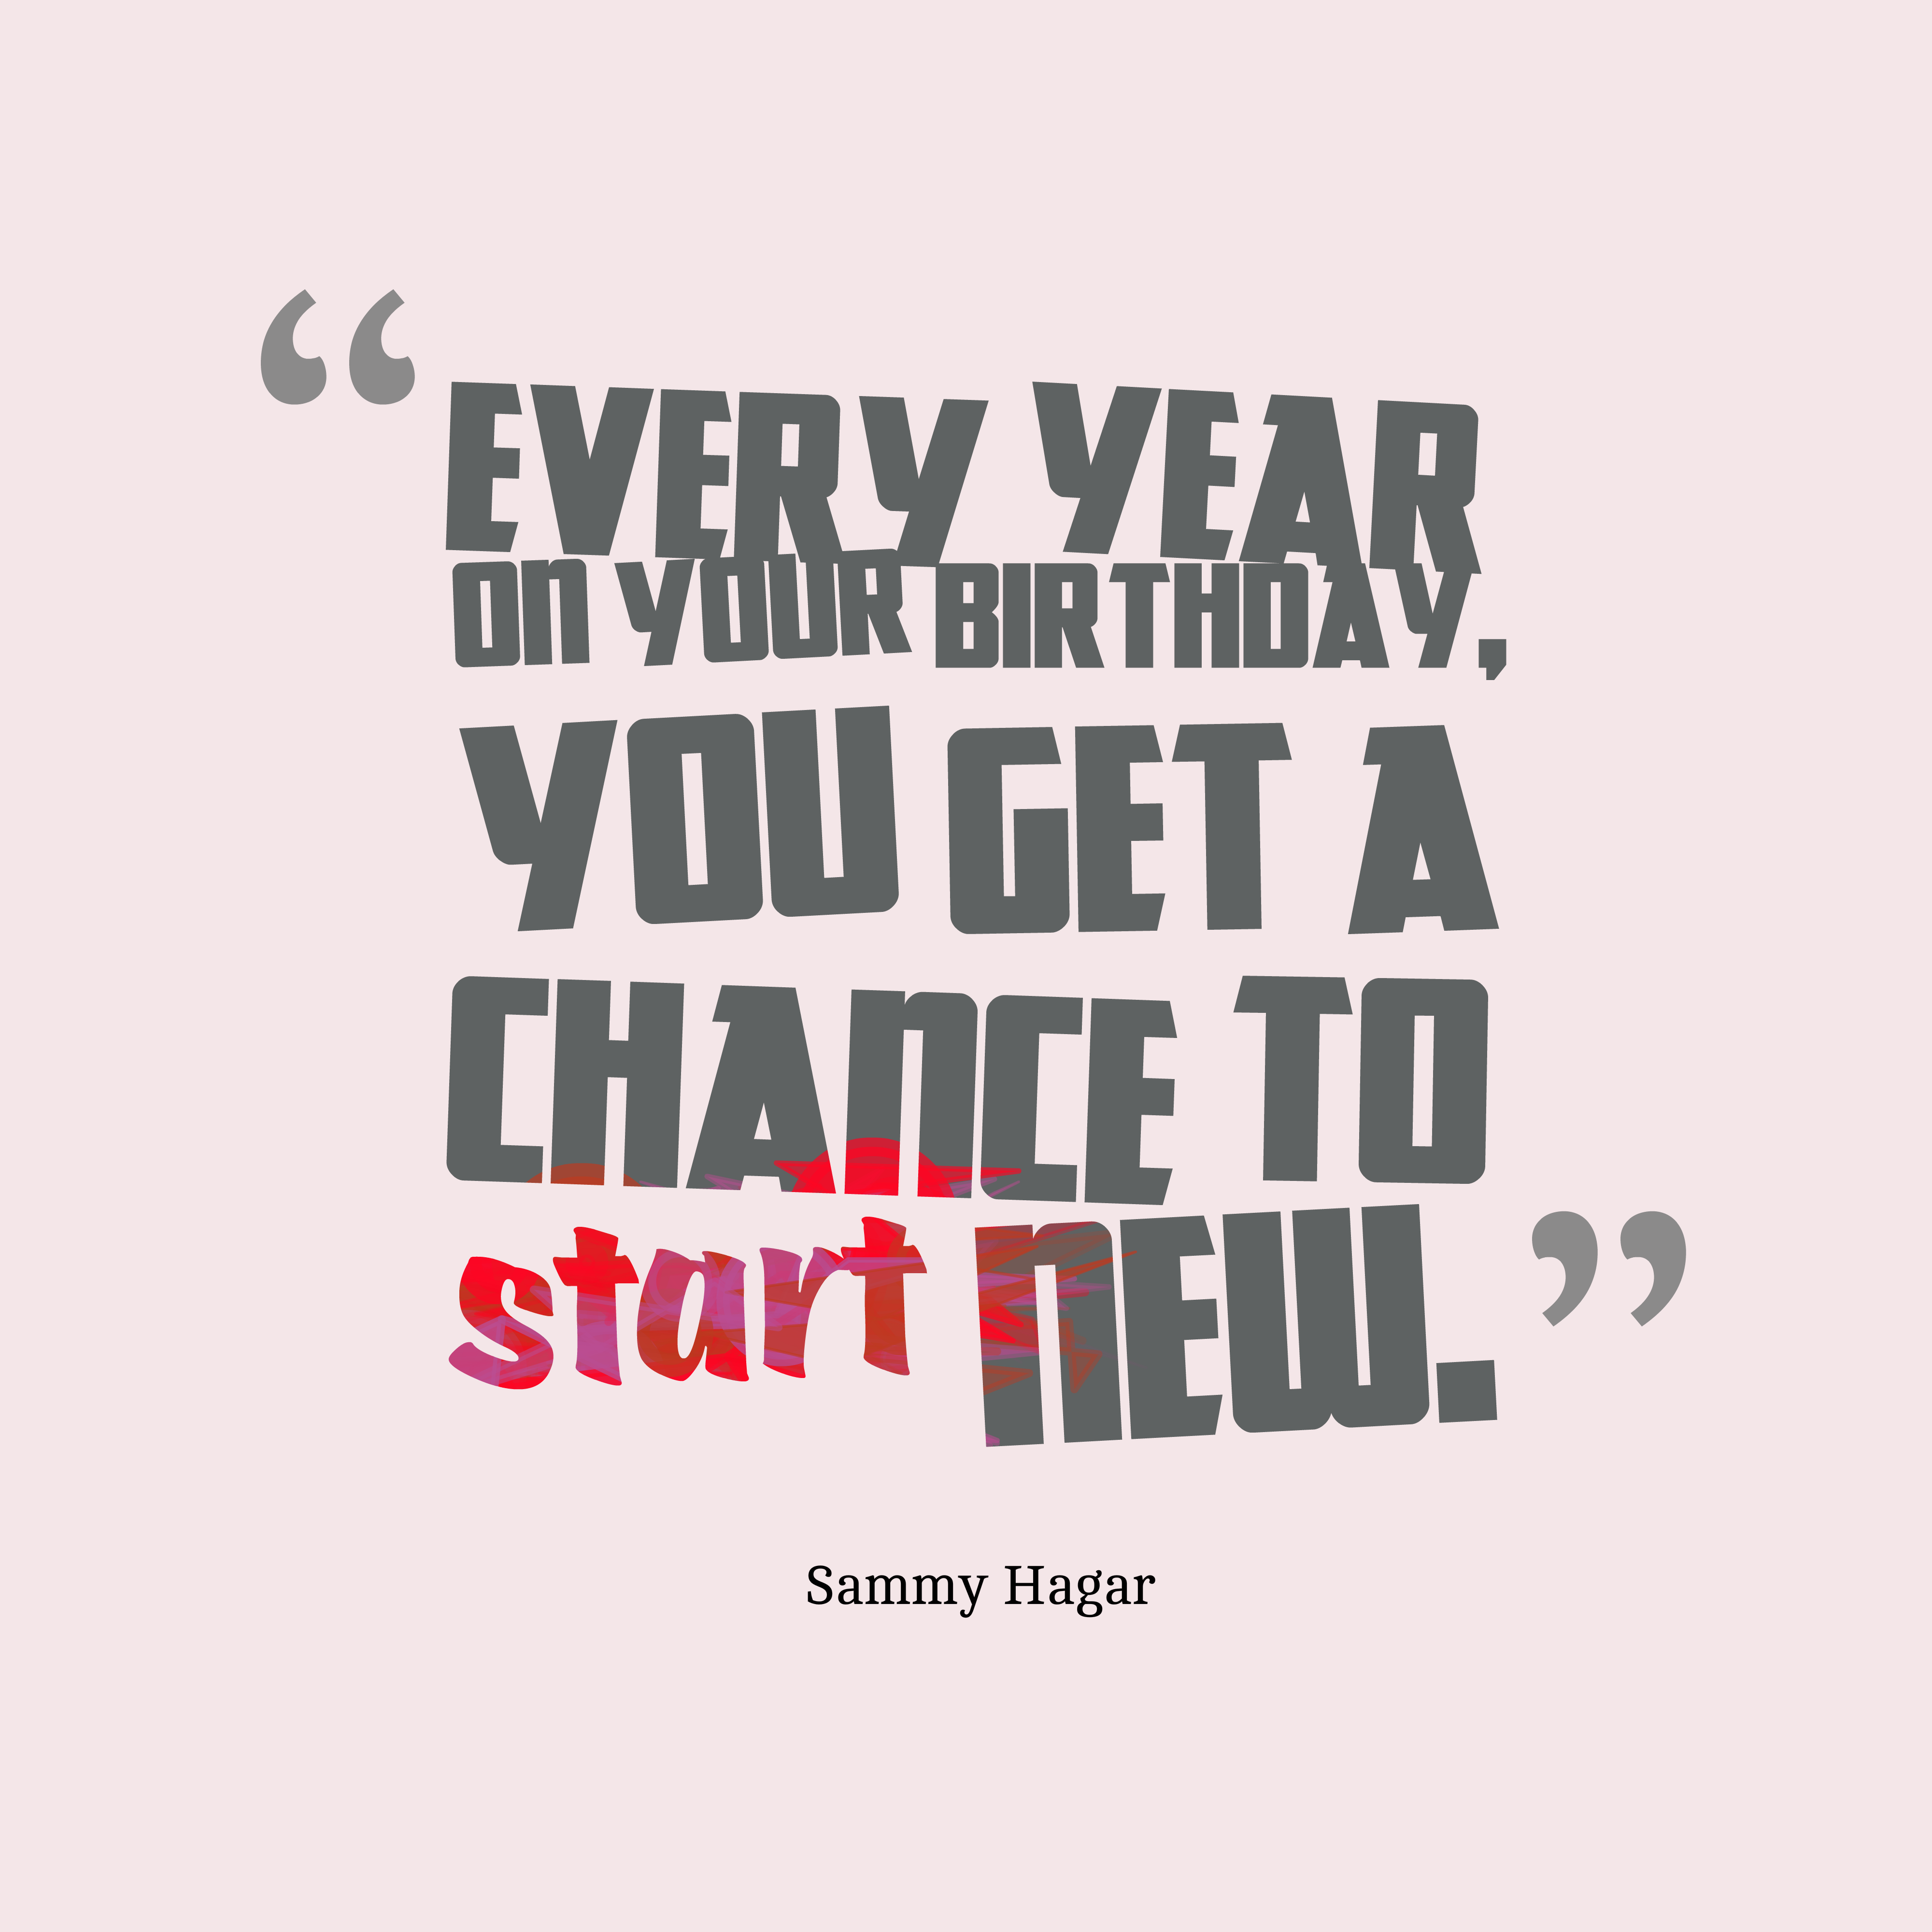 Quotes image of Every year on your birthday, you get a chance to start new.